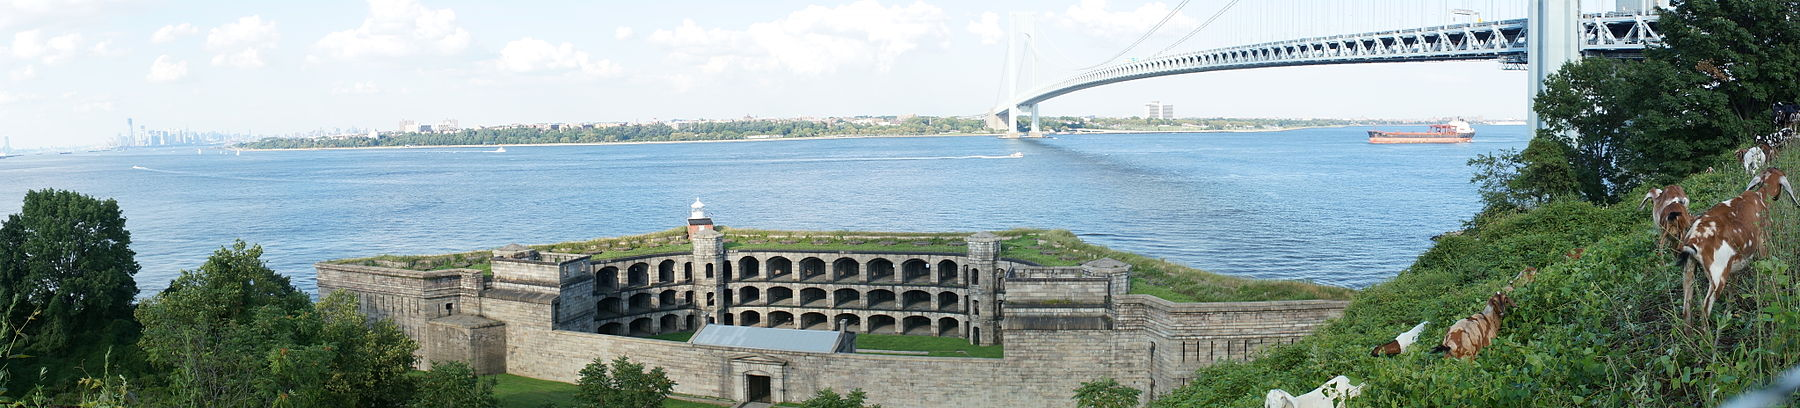 Panorama of the Upper New York Bay viewed from Staten Island. The Verrazano-Narrows Bridge is visible in the center of the image and Fort Wadsworth is visible in the foreground.